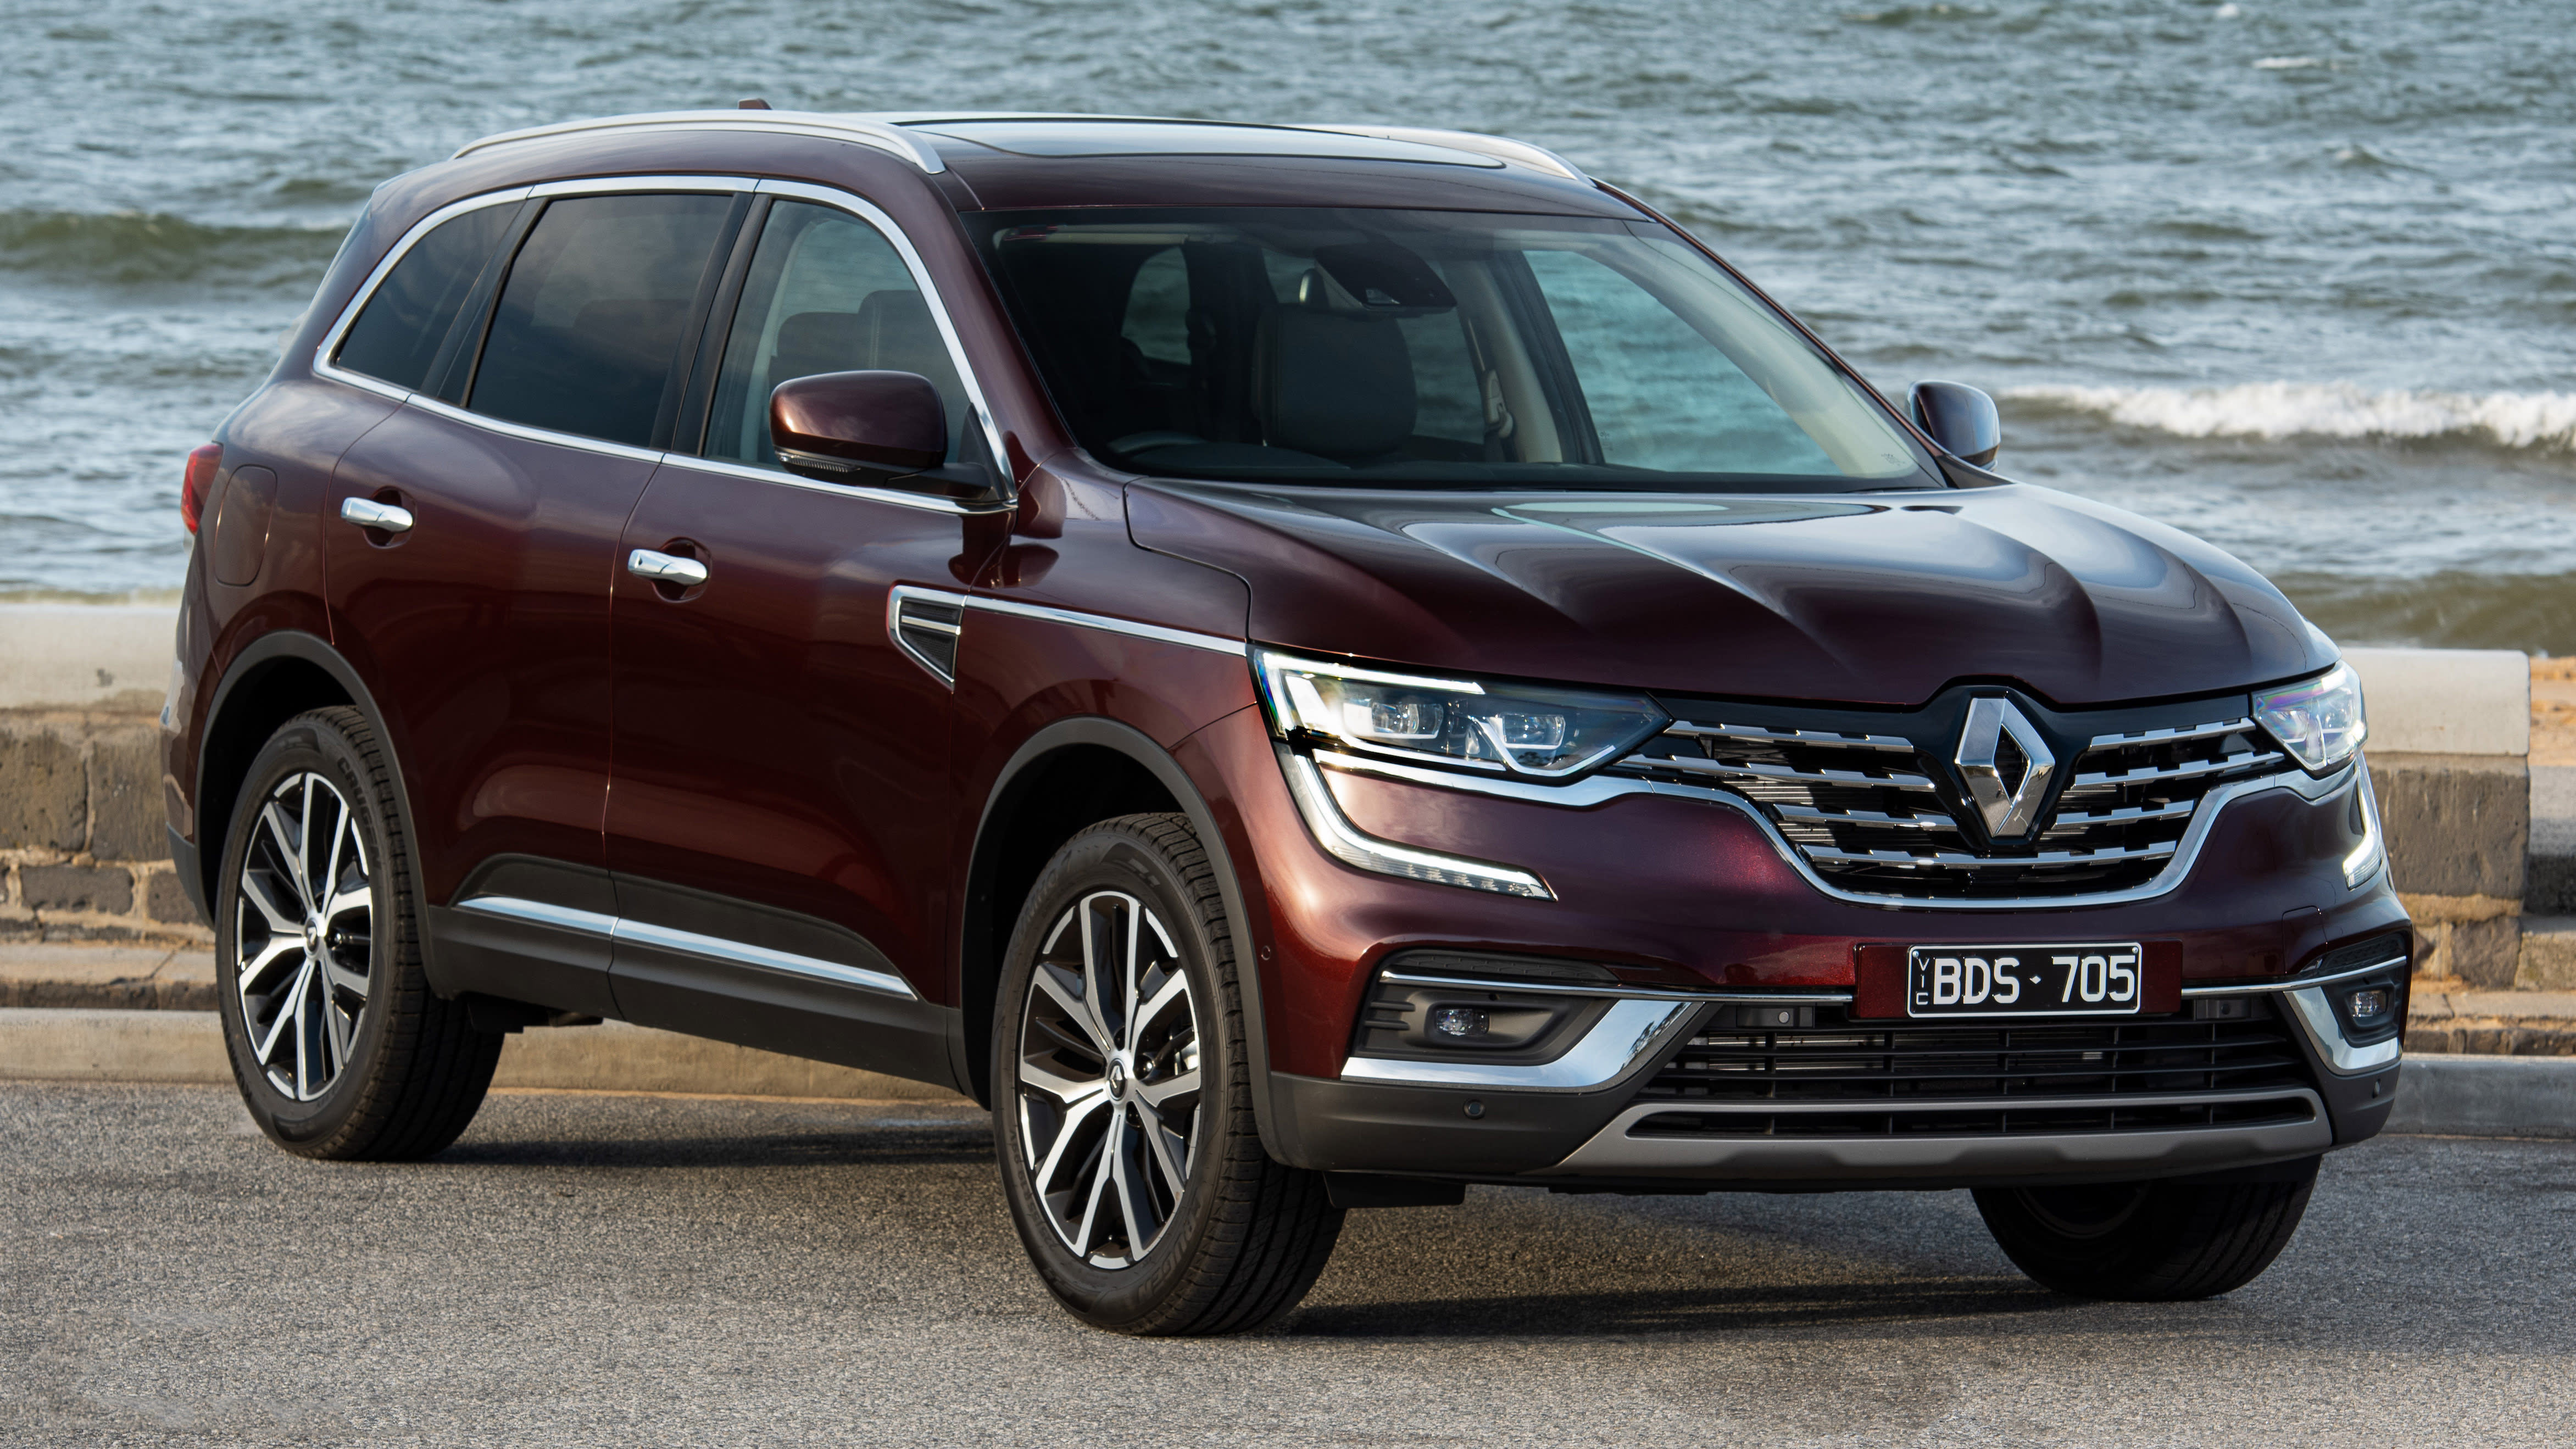 Renault Koleos Axed In The Uk But Remains On Sale In Australia Caradvice